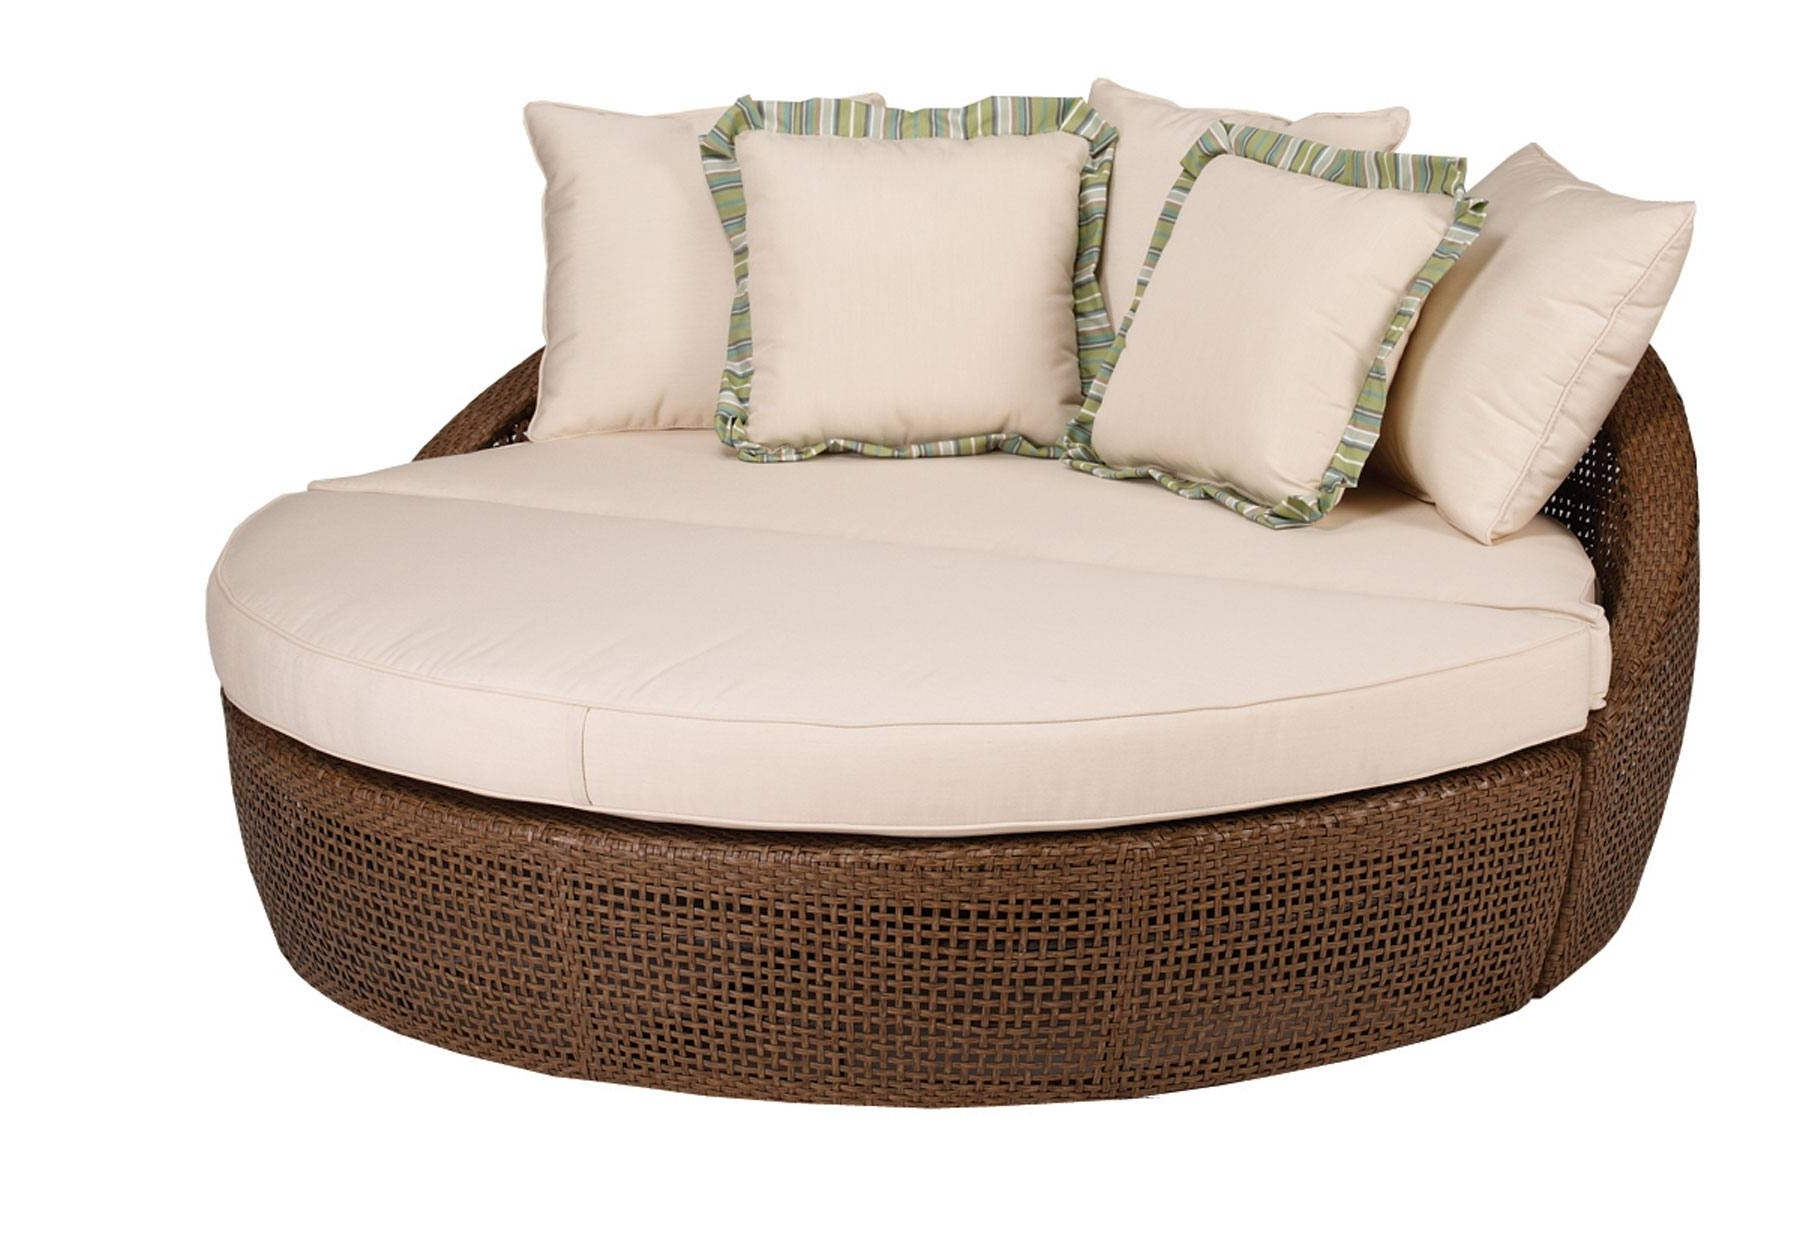 Comfy Chaise Lounges With Regard To 2018 Comfy Chaise Lounge Chairs • Lounge Chairs Ideas (View 3 of 15)